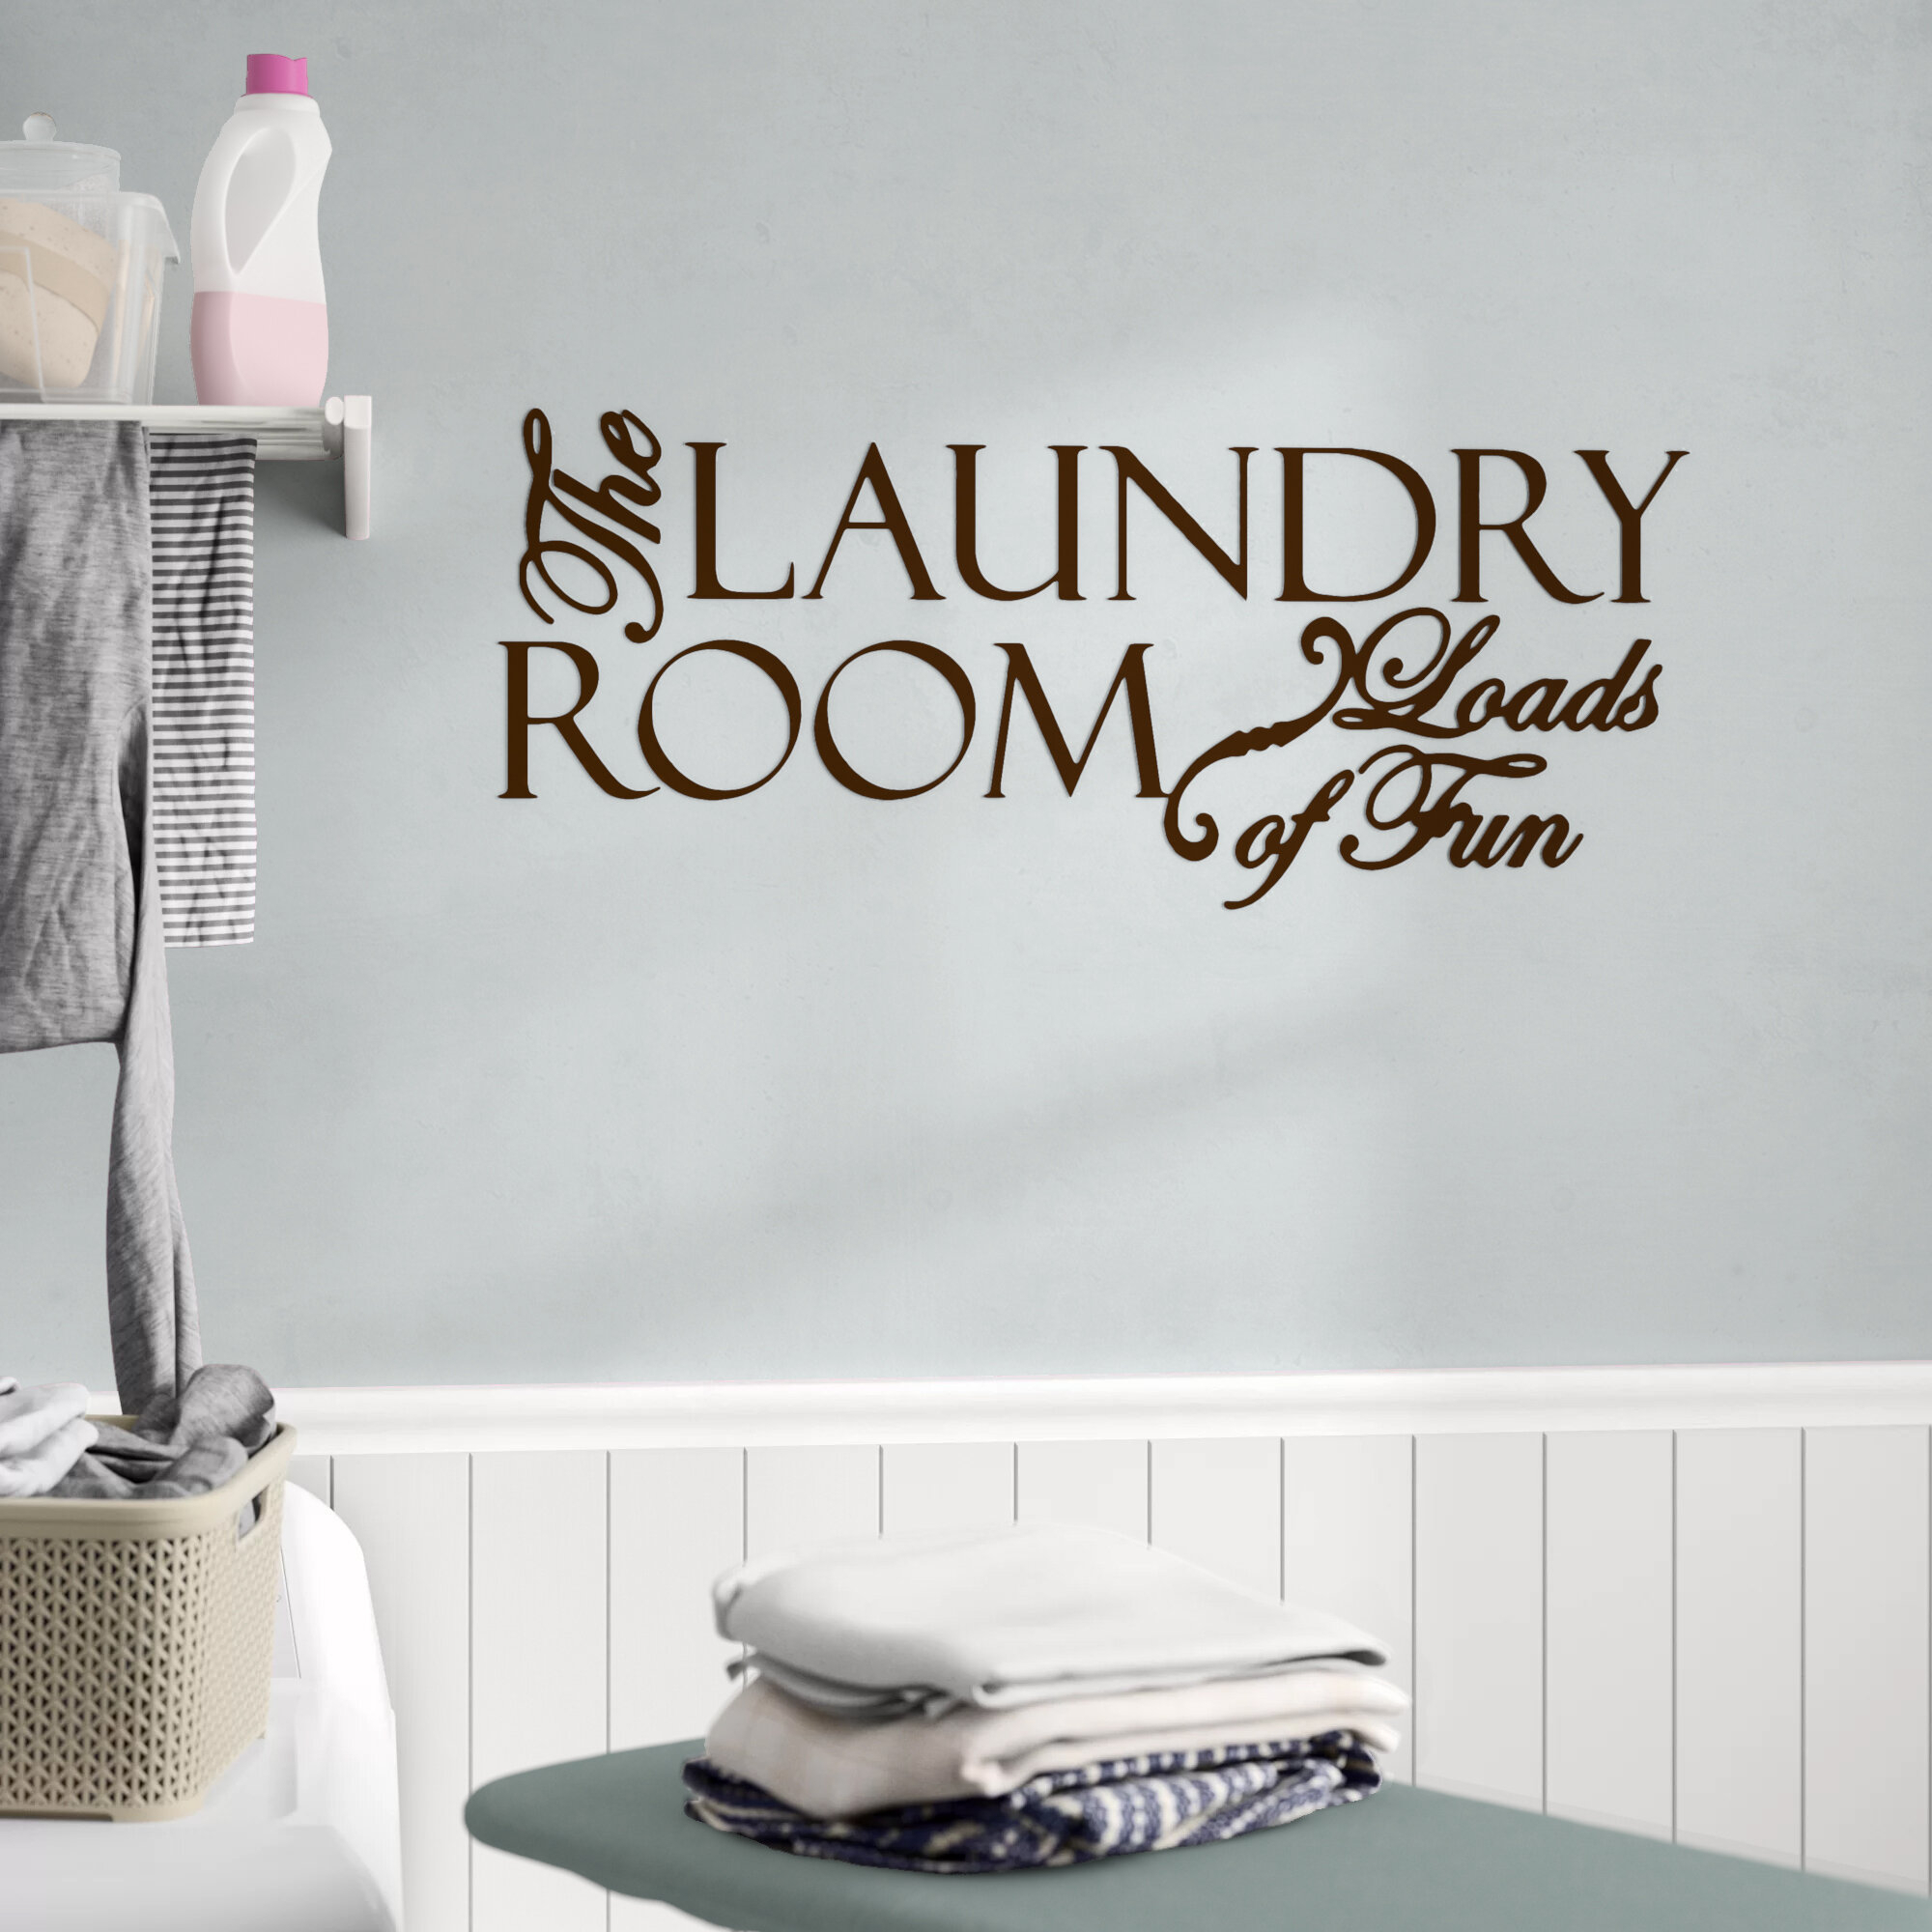 Metal Laundry Room Wall Decor By Winston Porter Throughout Most Popular Winston Porter The Laundry Room Loads Of Fun Wall Decal (View 8 of 20)